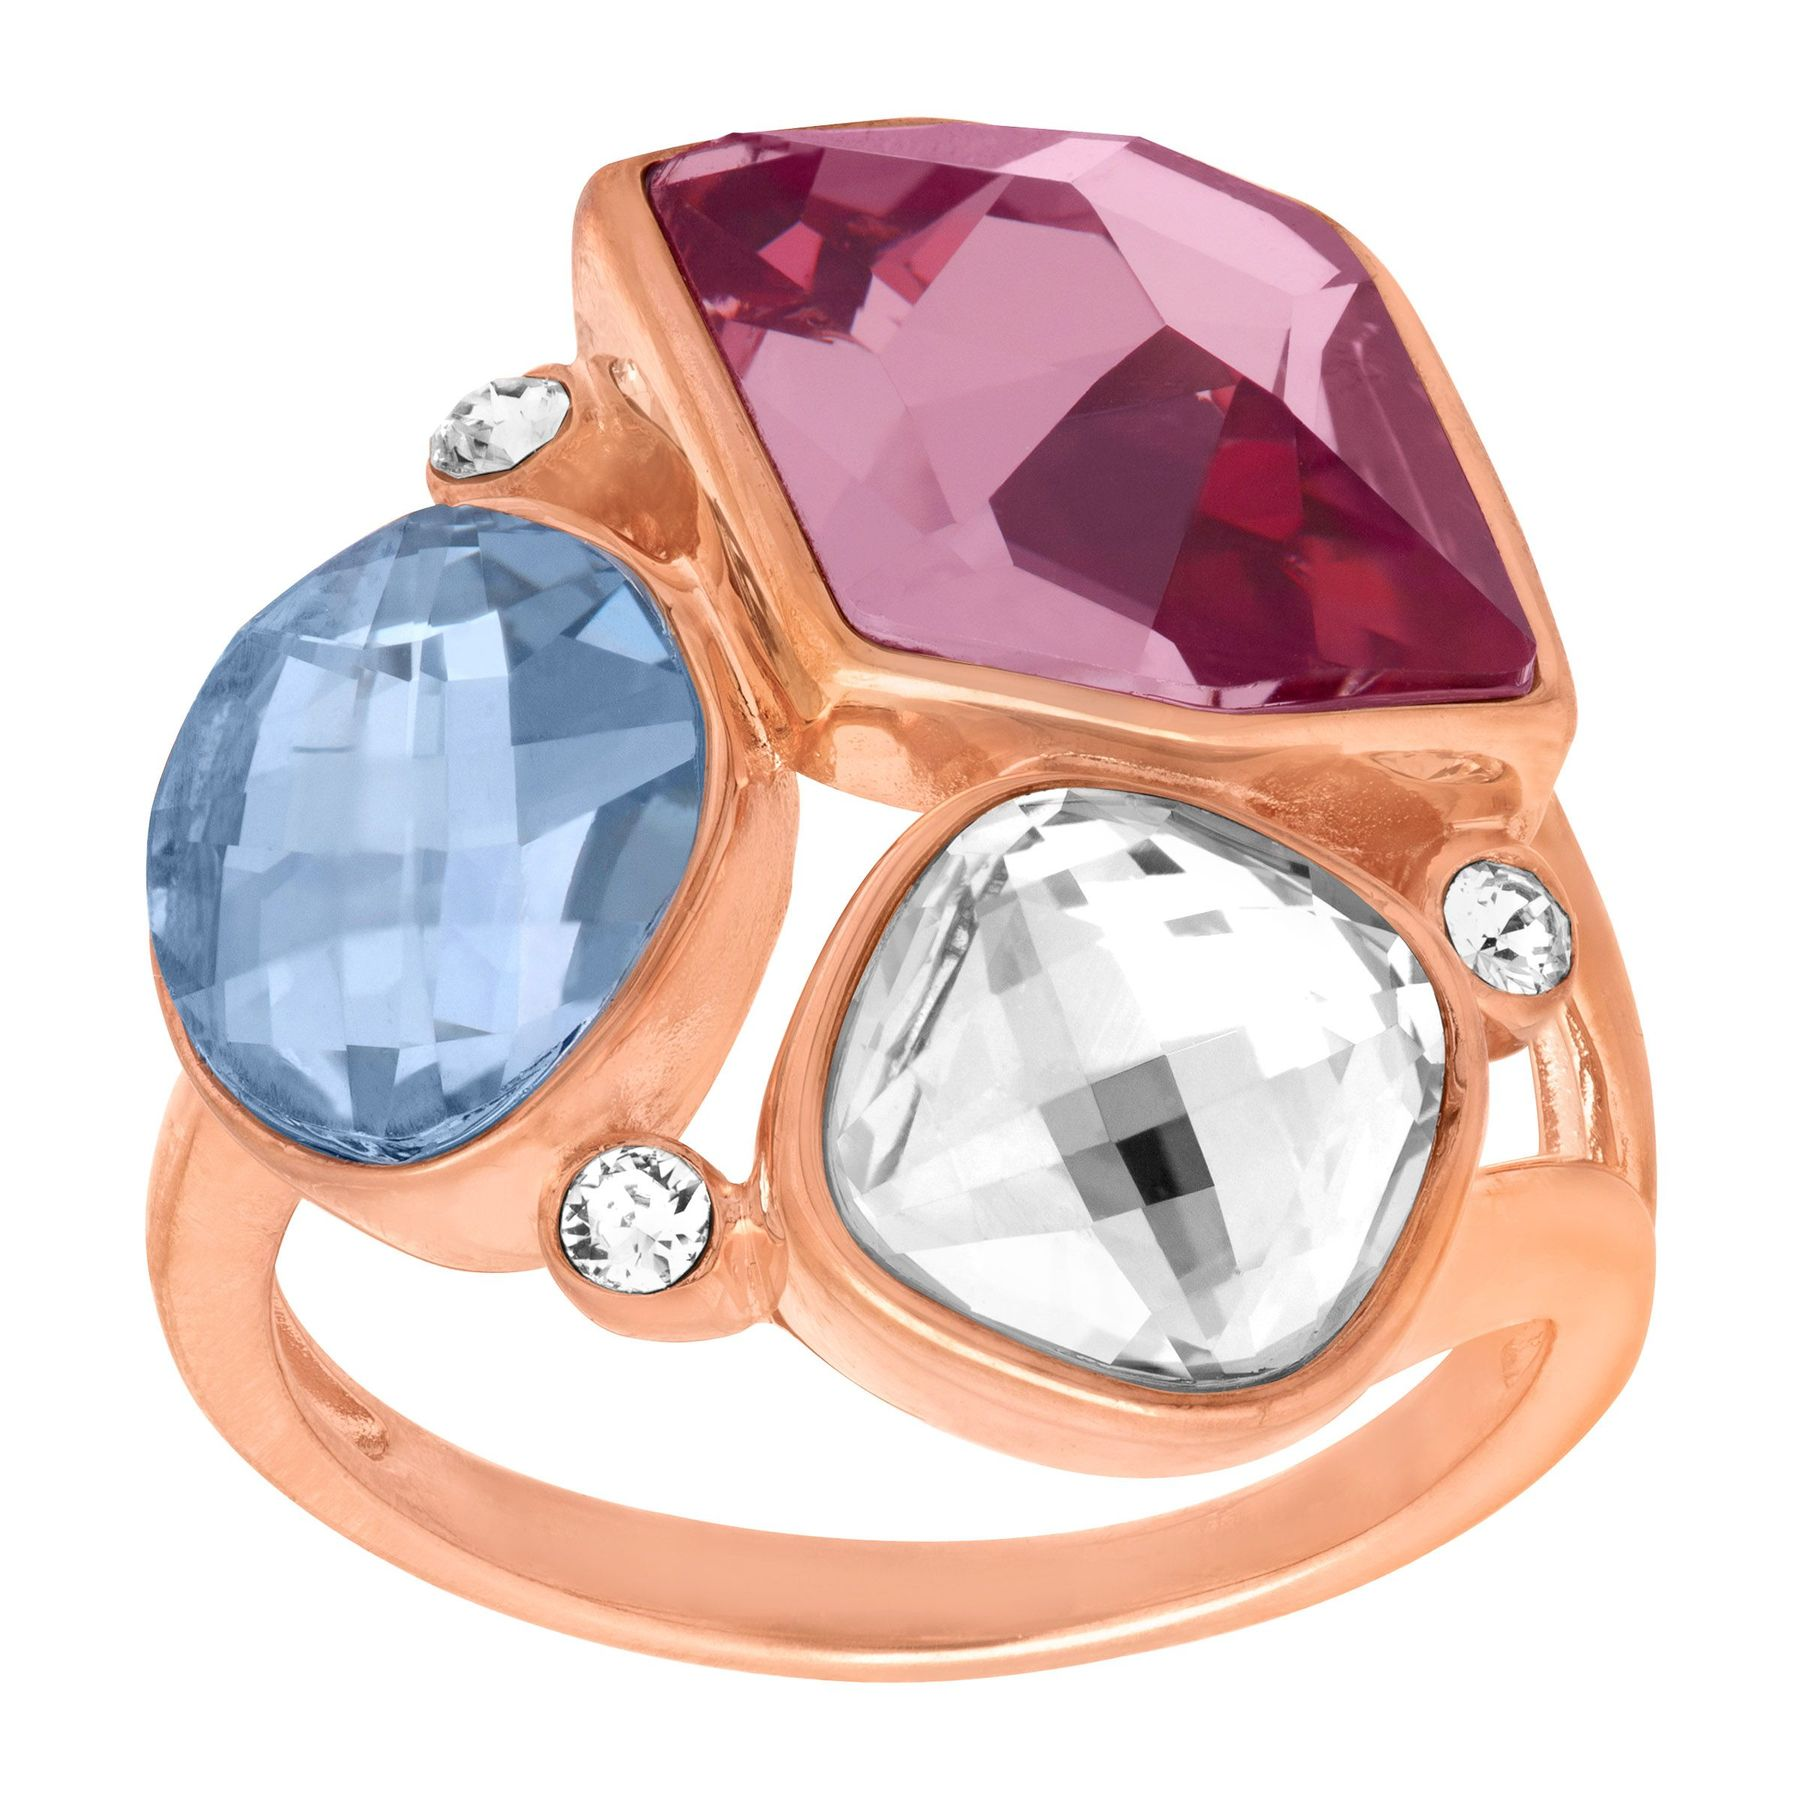 56dd54121 Crystaluxe Cluster Ring with Swarovski Crystals in 18K Rose Gold-Plated  Sterling Silver | Cluster Ring with Swarovski Crystals | Jewelry.com